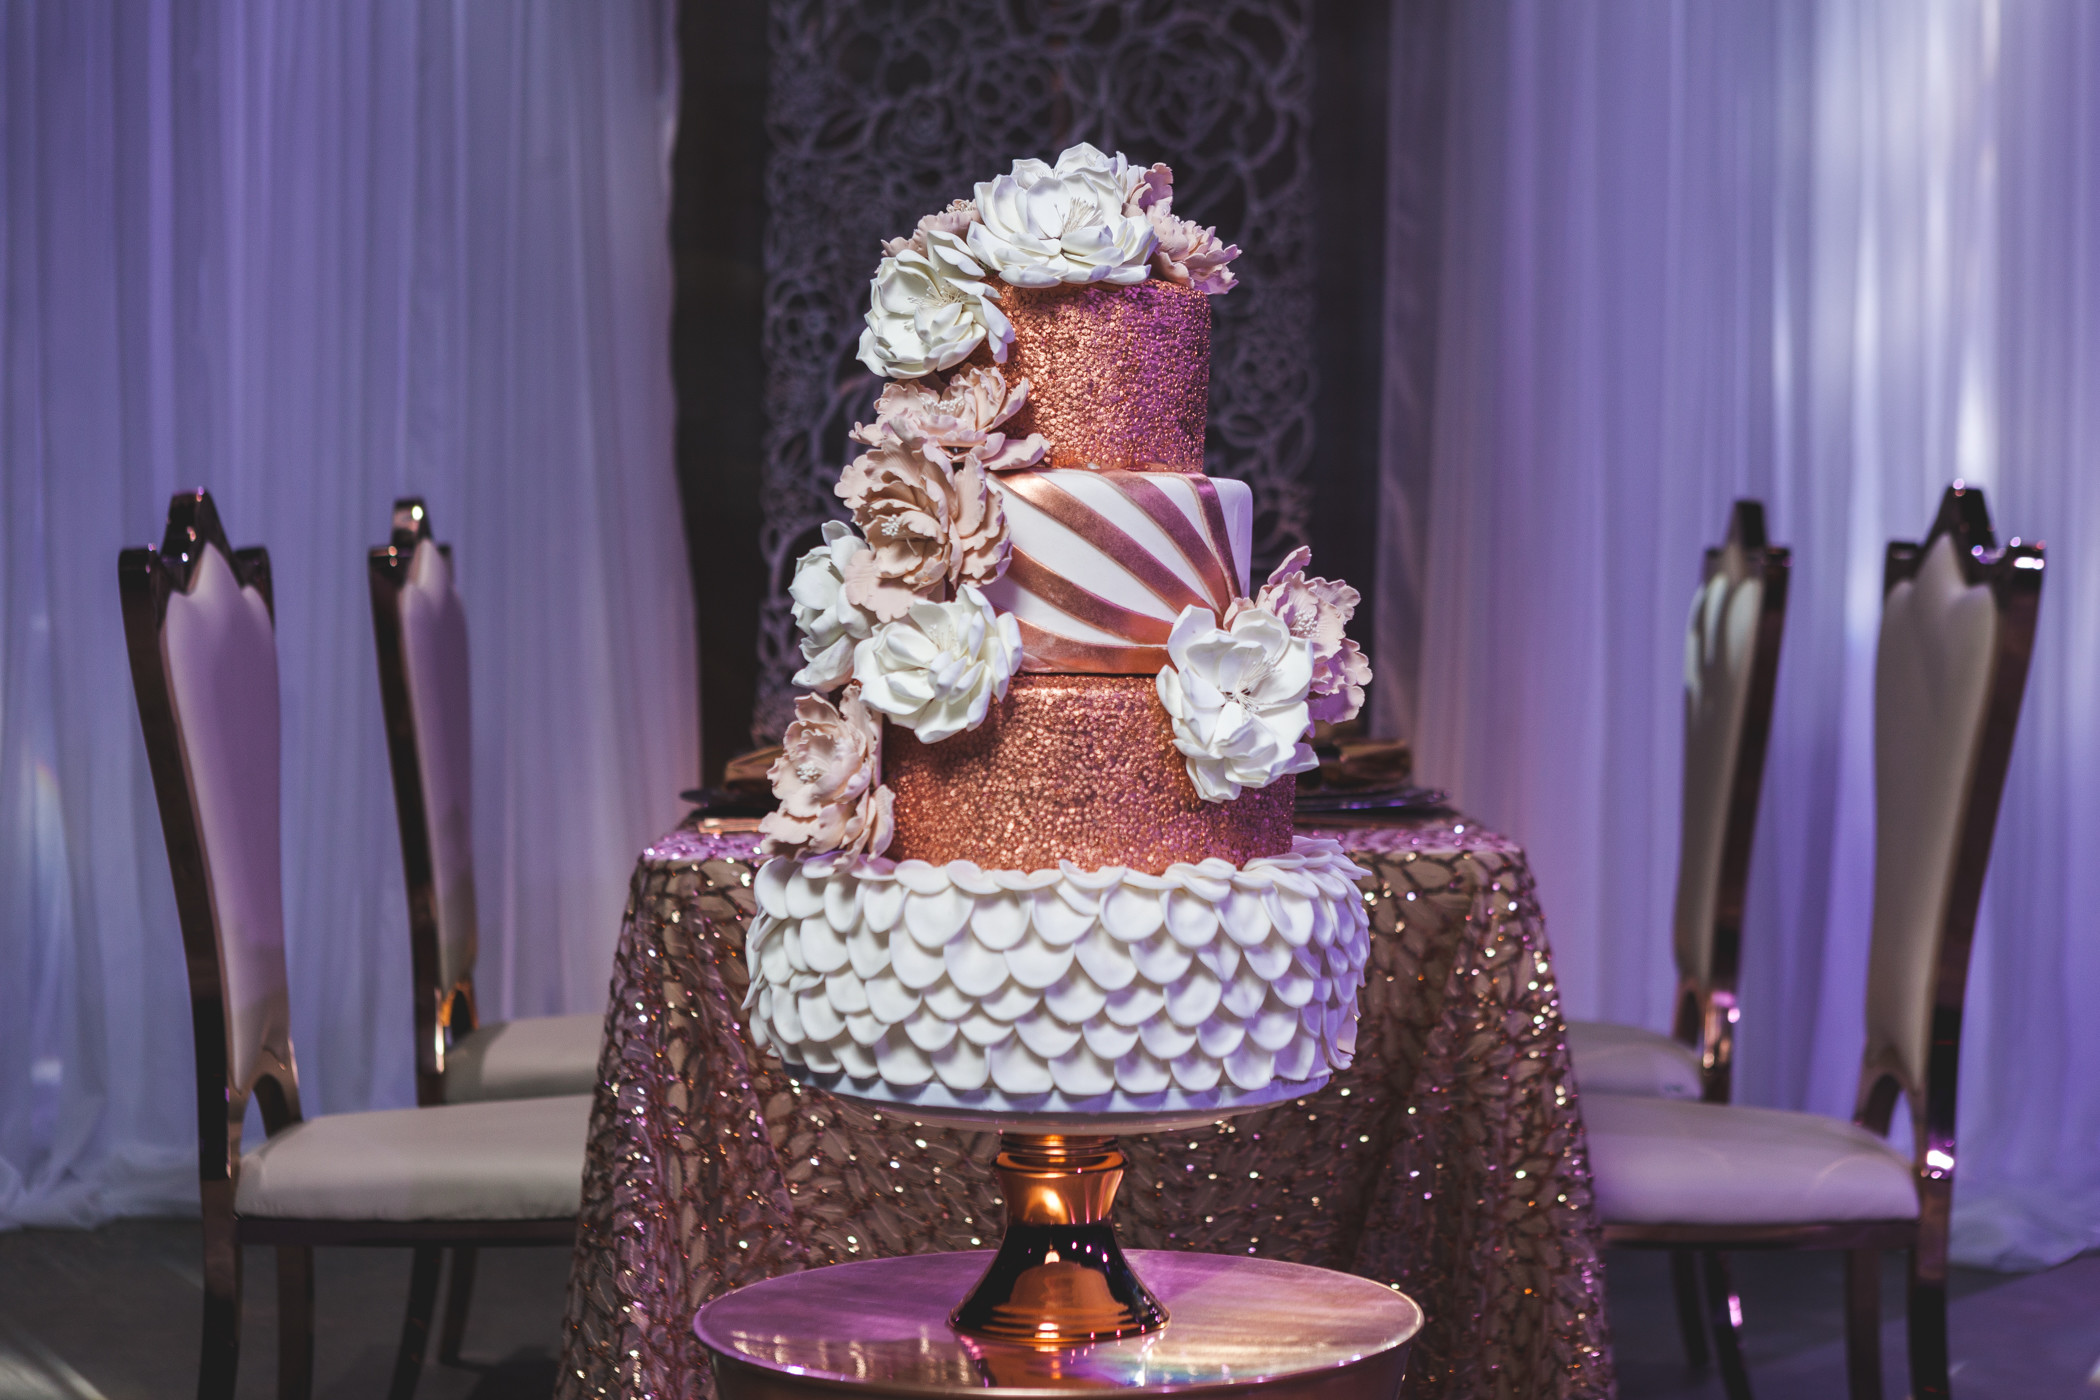 A Sydney's Sweets wedding cake, as featured in Inside Weddings magazine.